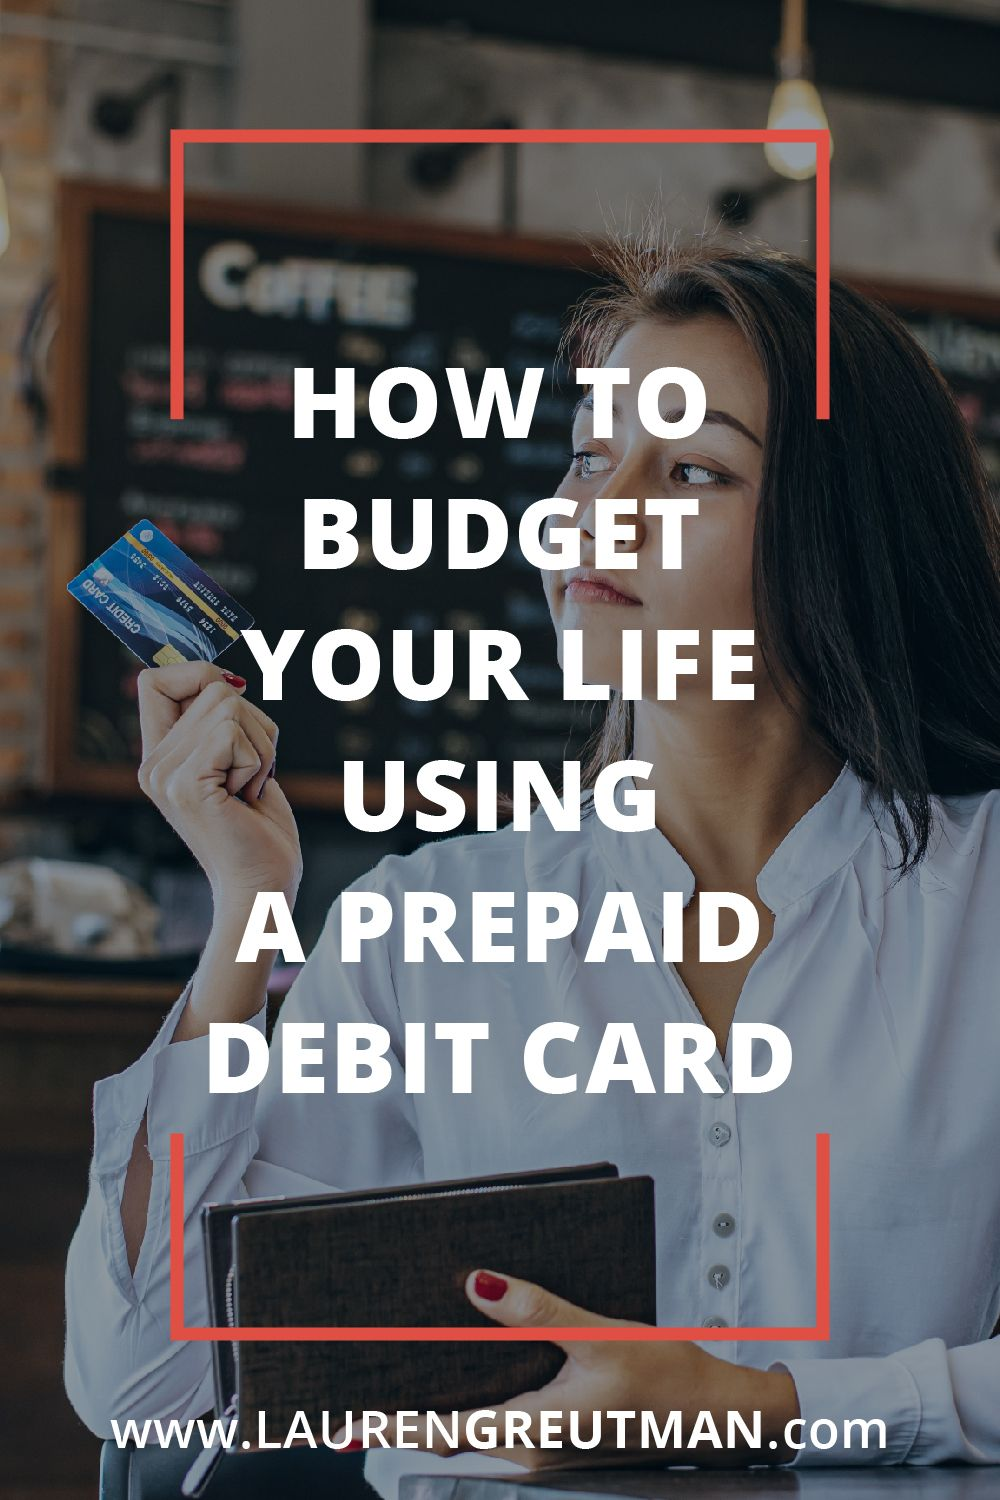 How to budget your life using a prepaid debit card